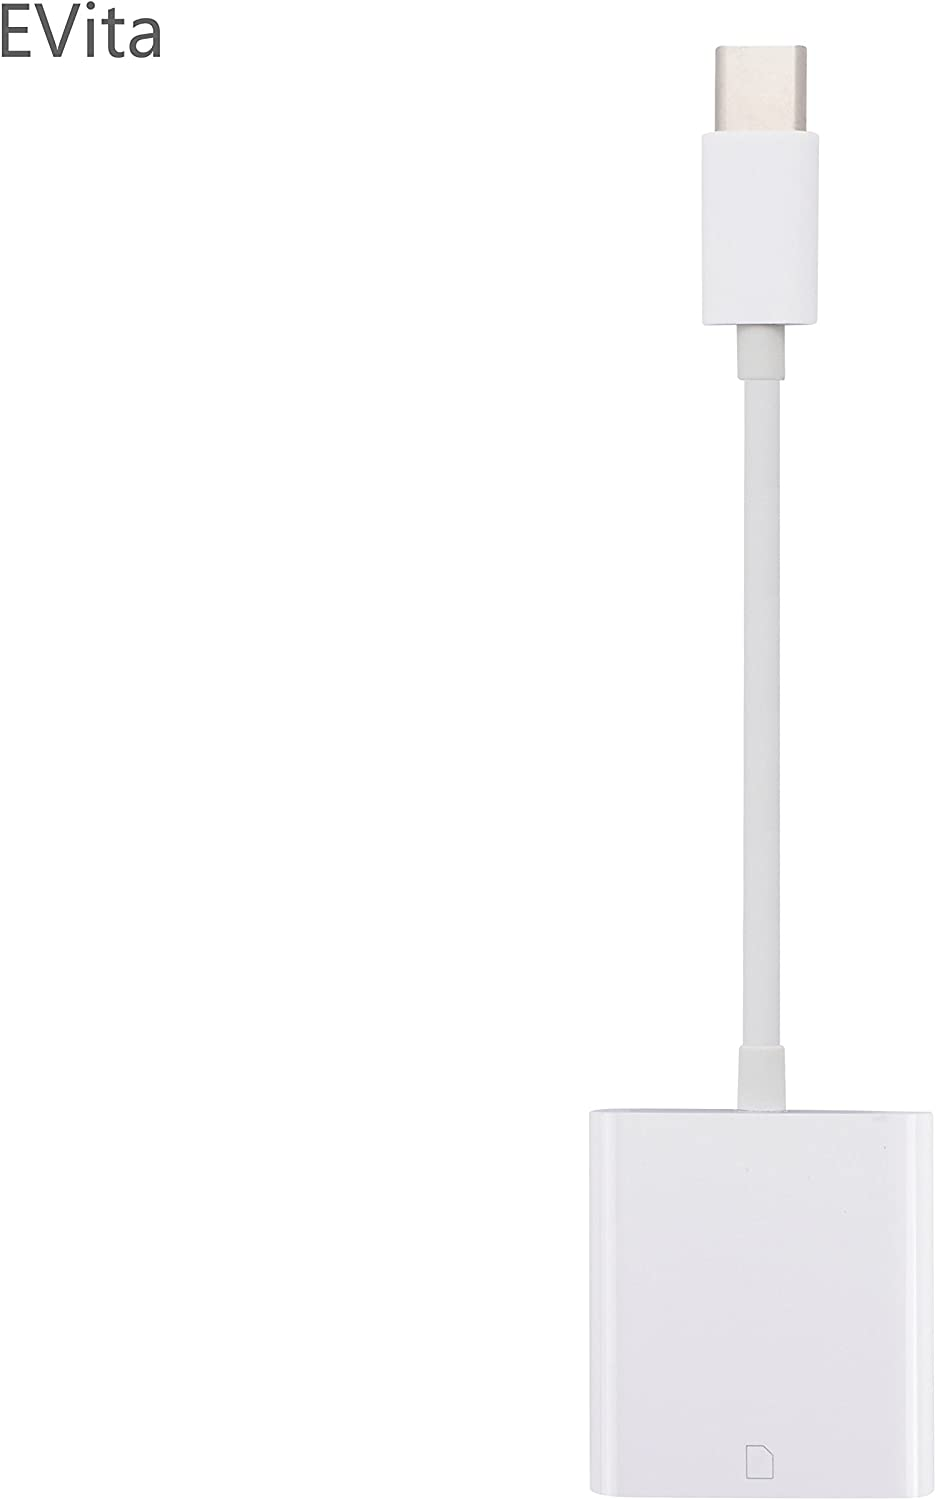 EVita USB-C Type-C to SD Card Camera Reader Adapter for Apple MacBook Pro, Samsung Galaxy S8/S8 +/Note 8/S9/S9+/Note 9/S10, OnePlus Xiaomi Huawei LG Google Pixel Android Smartphone, No App Needed